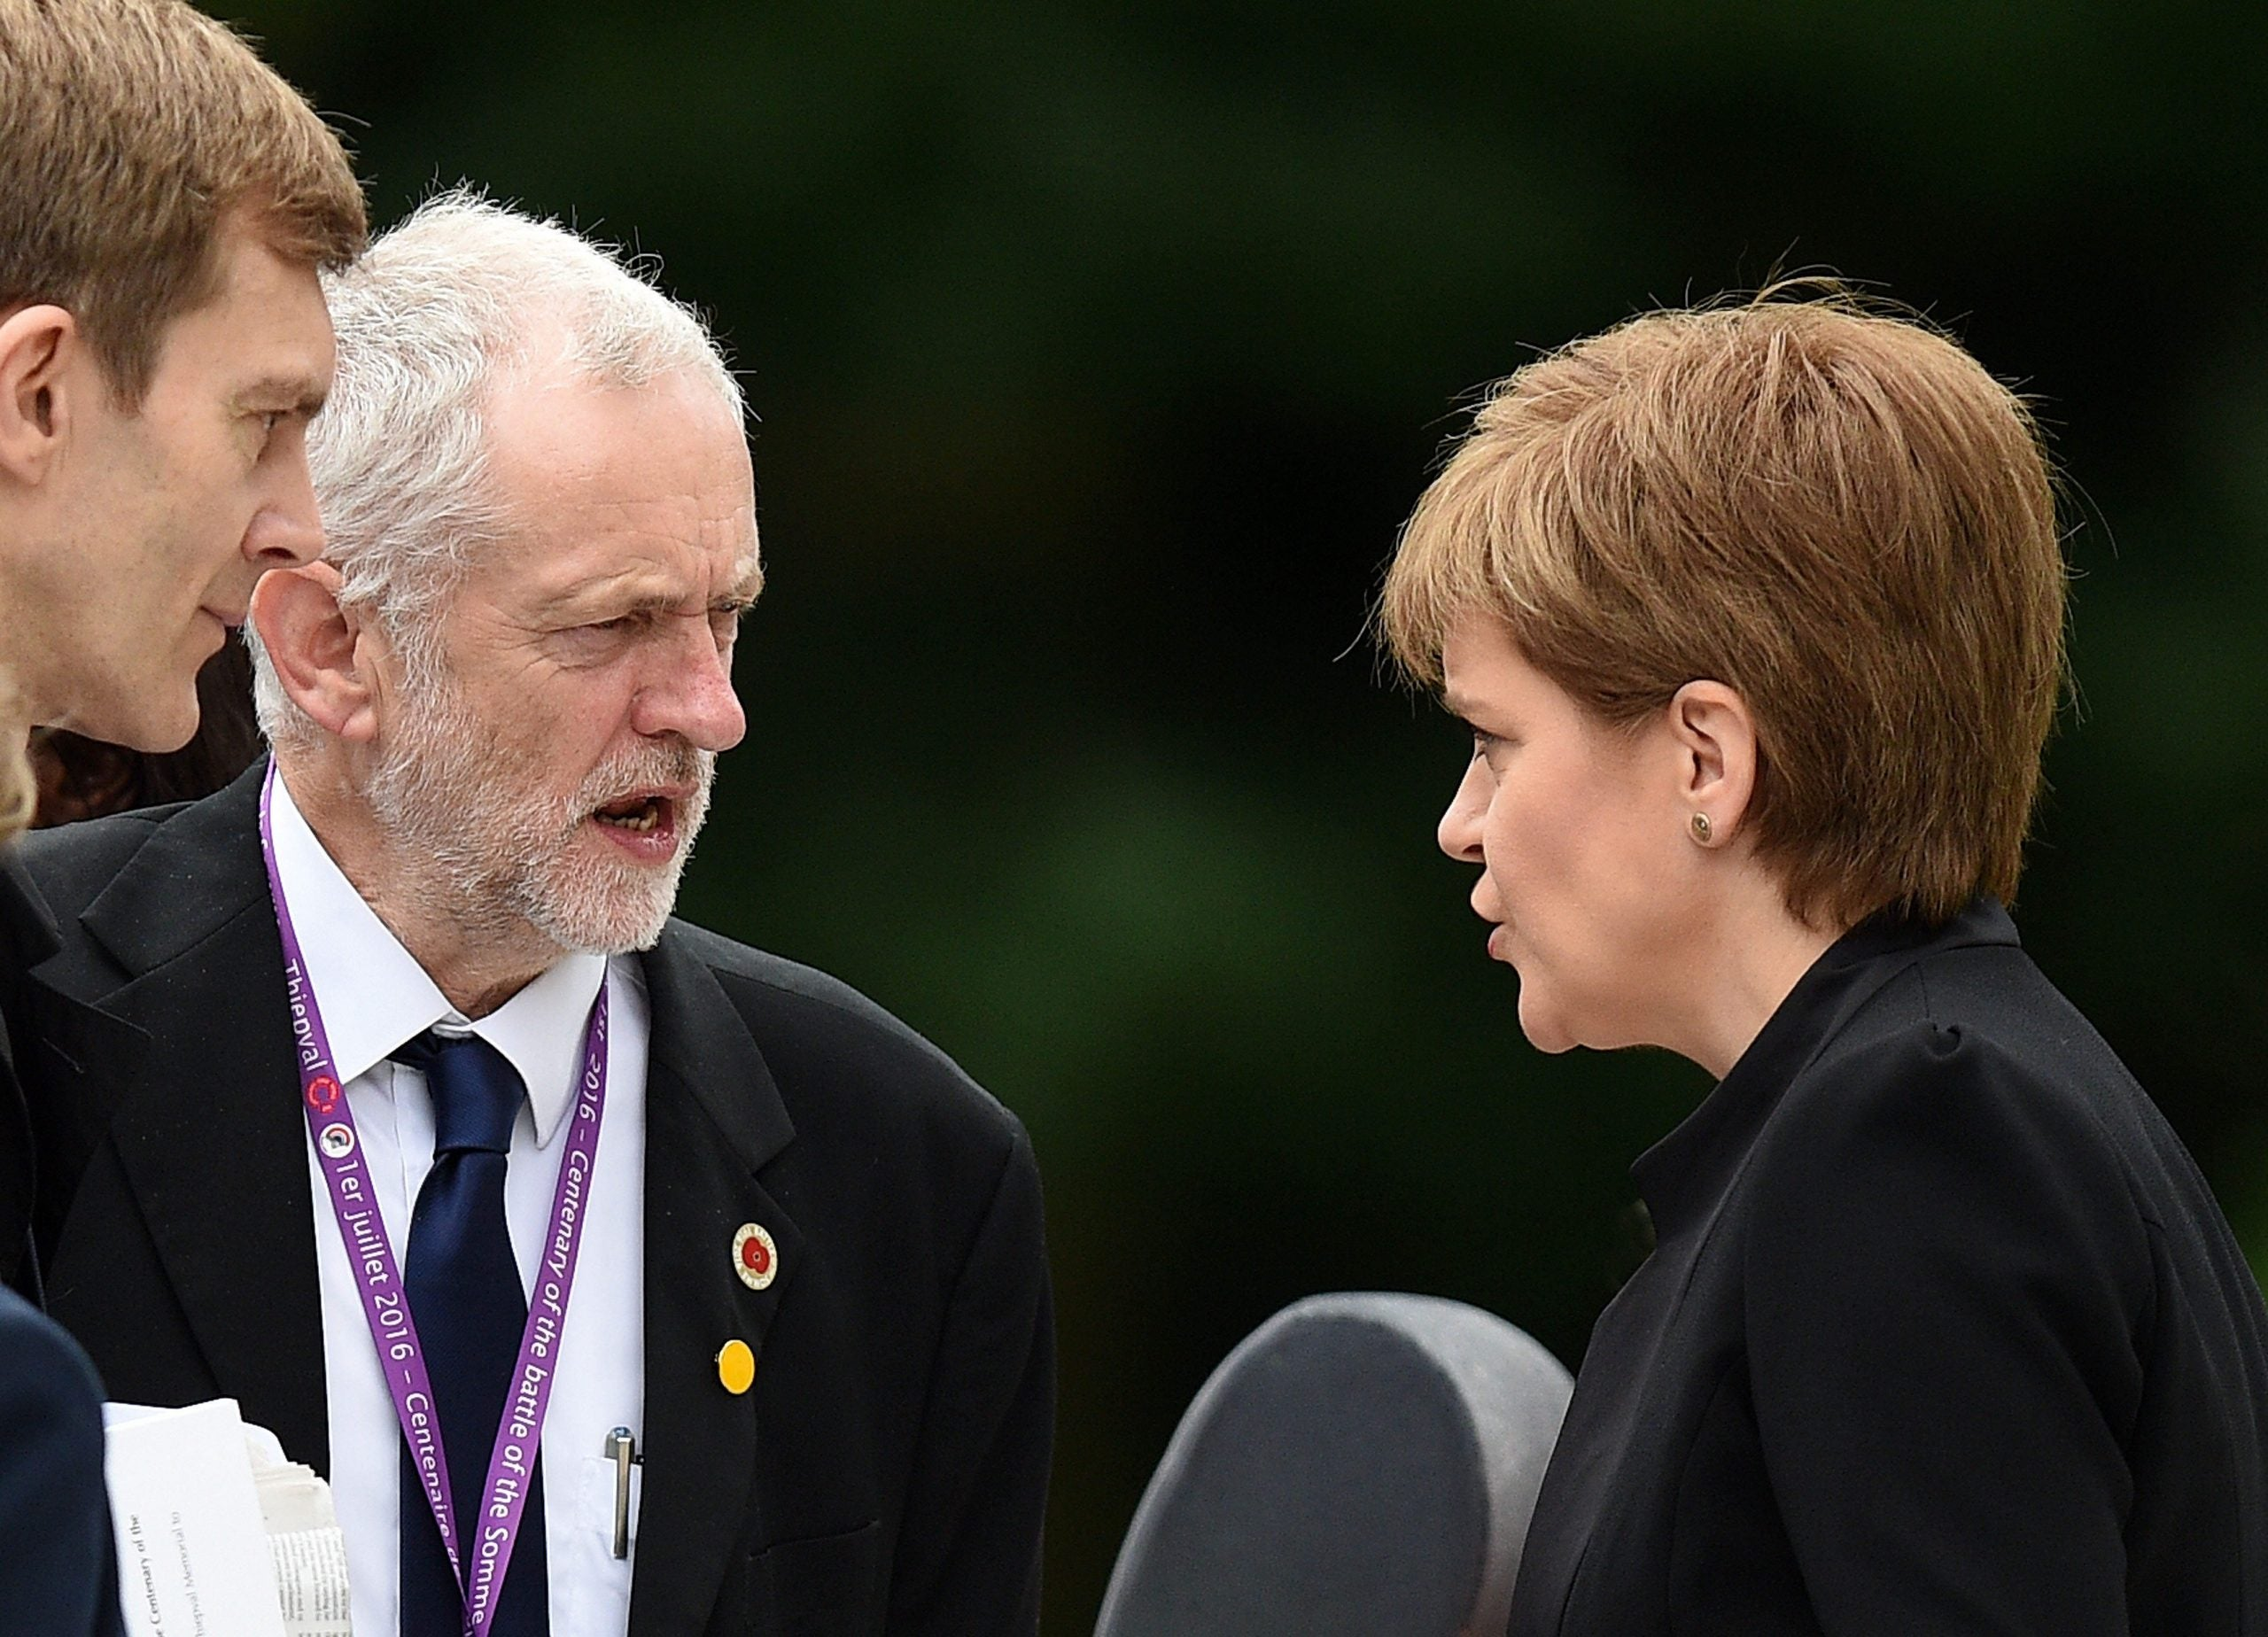 A Labour SNP progressive alliance is the only way to kick out the Tories